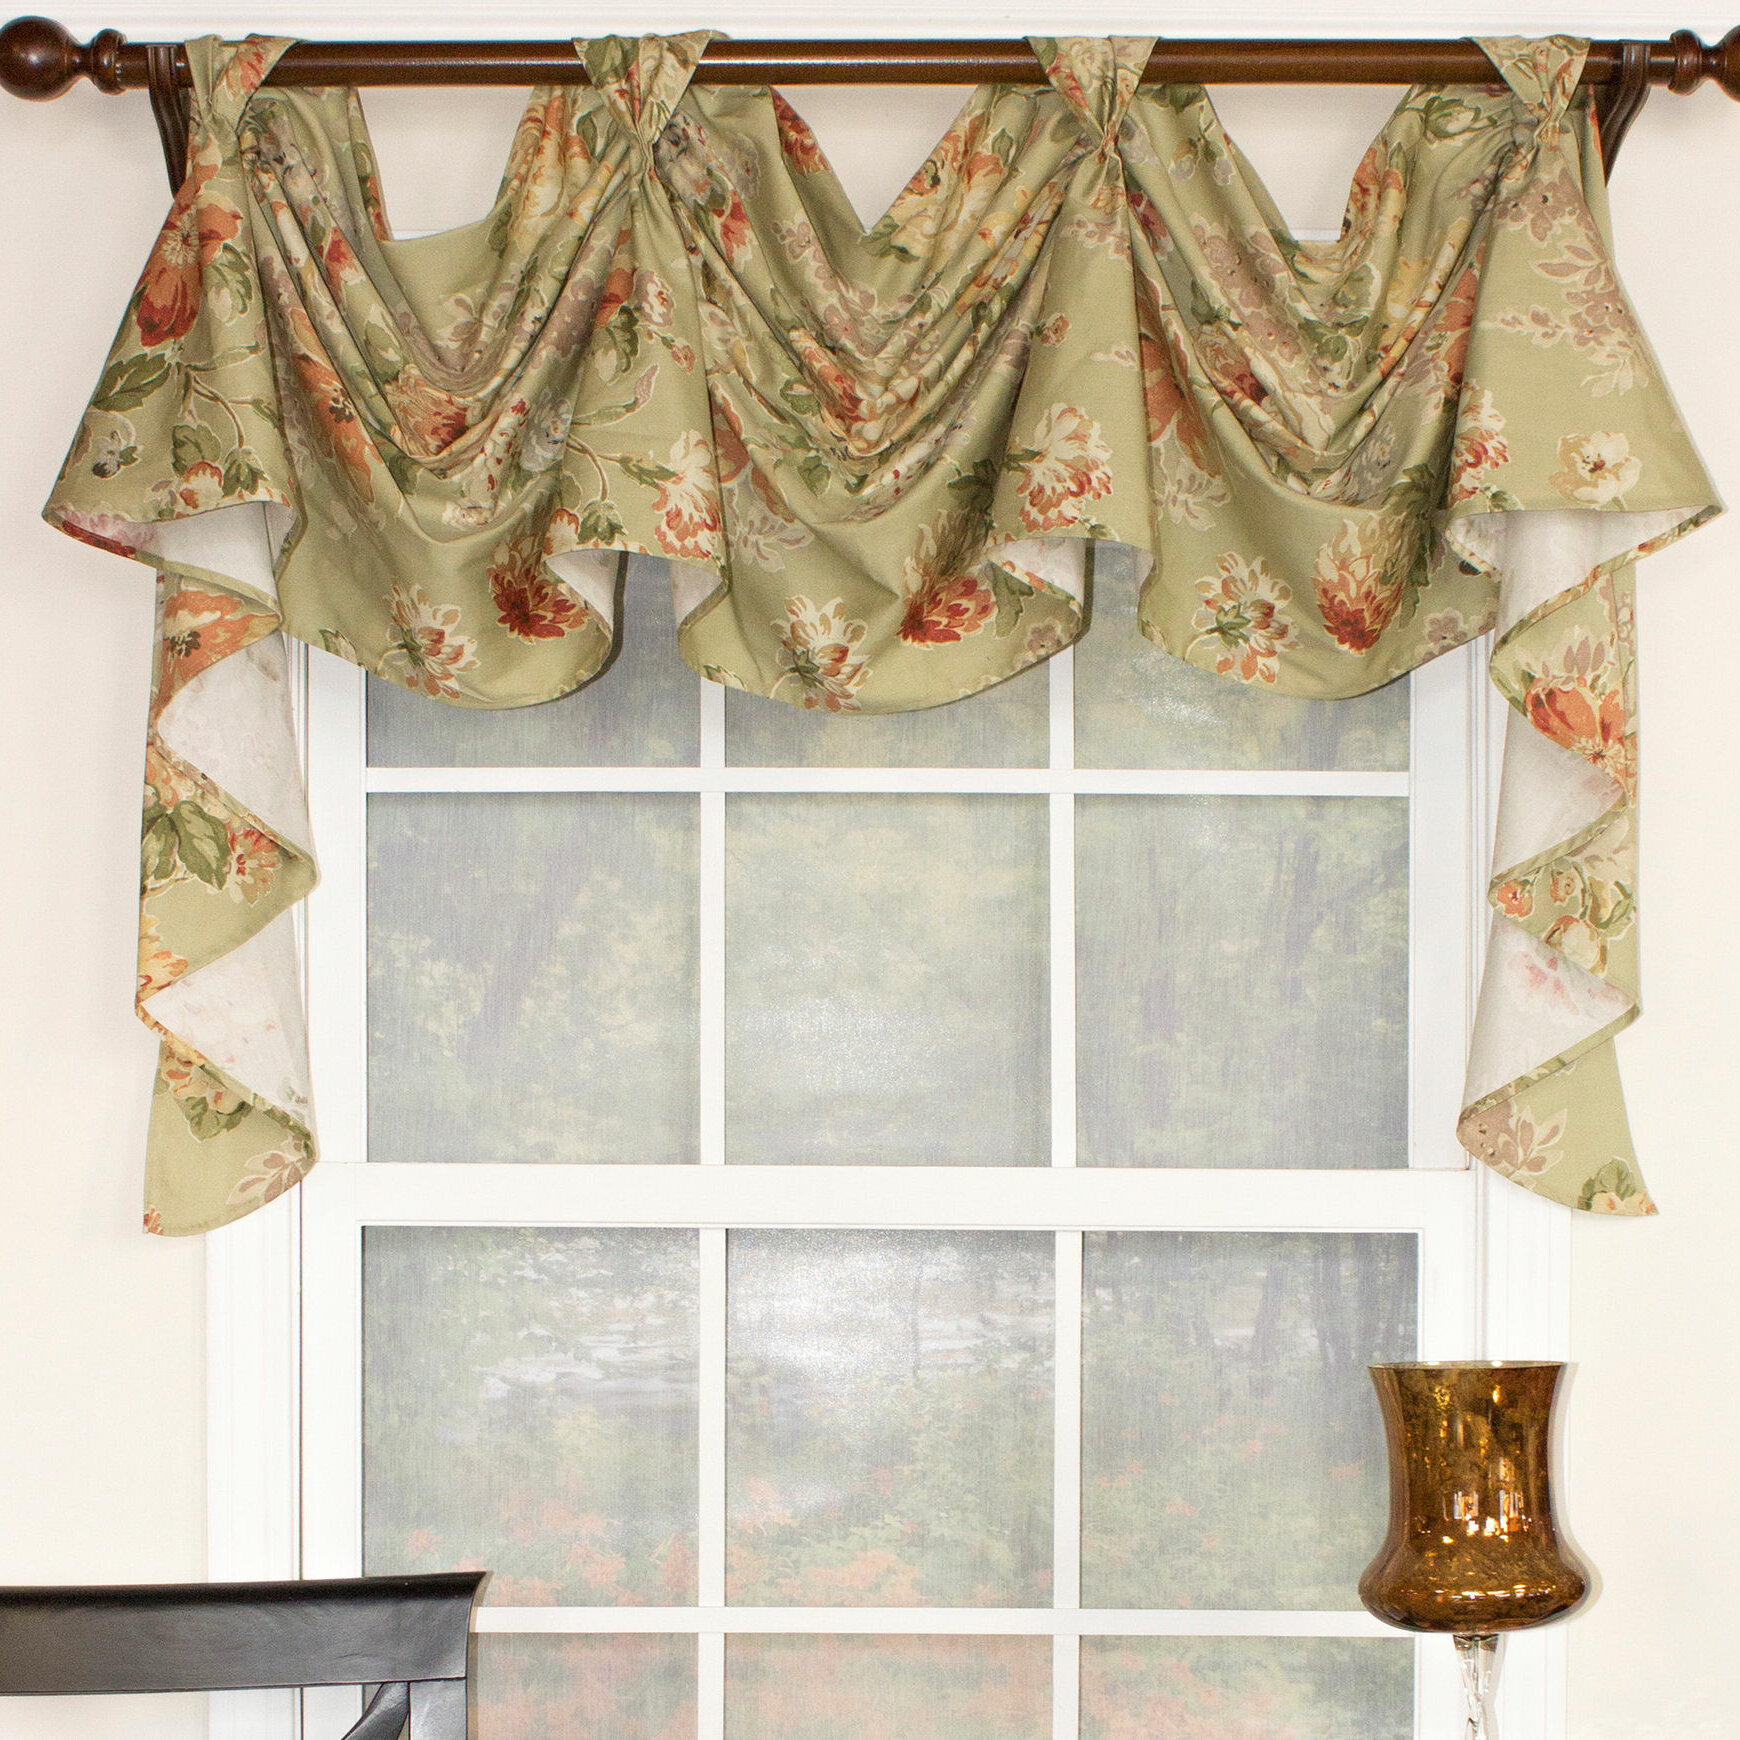 elegant swag love valance valances room curtains for windows youll white cute swags sheer coral dining